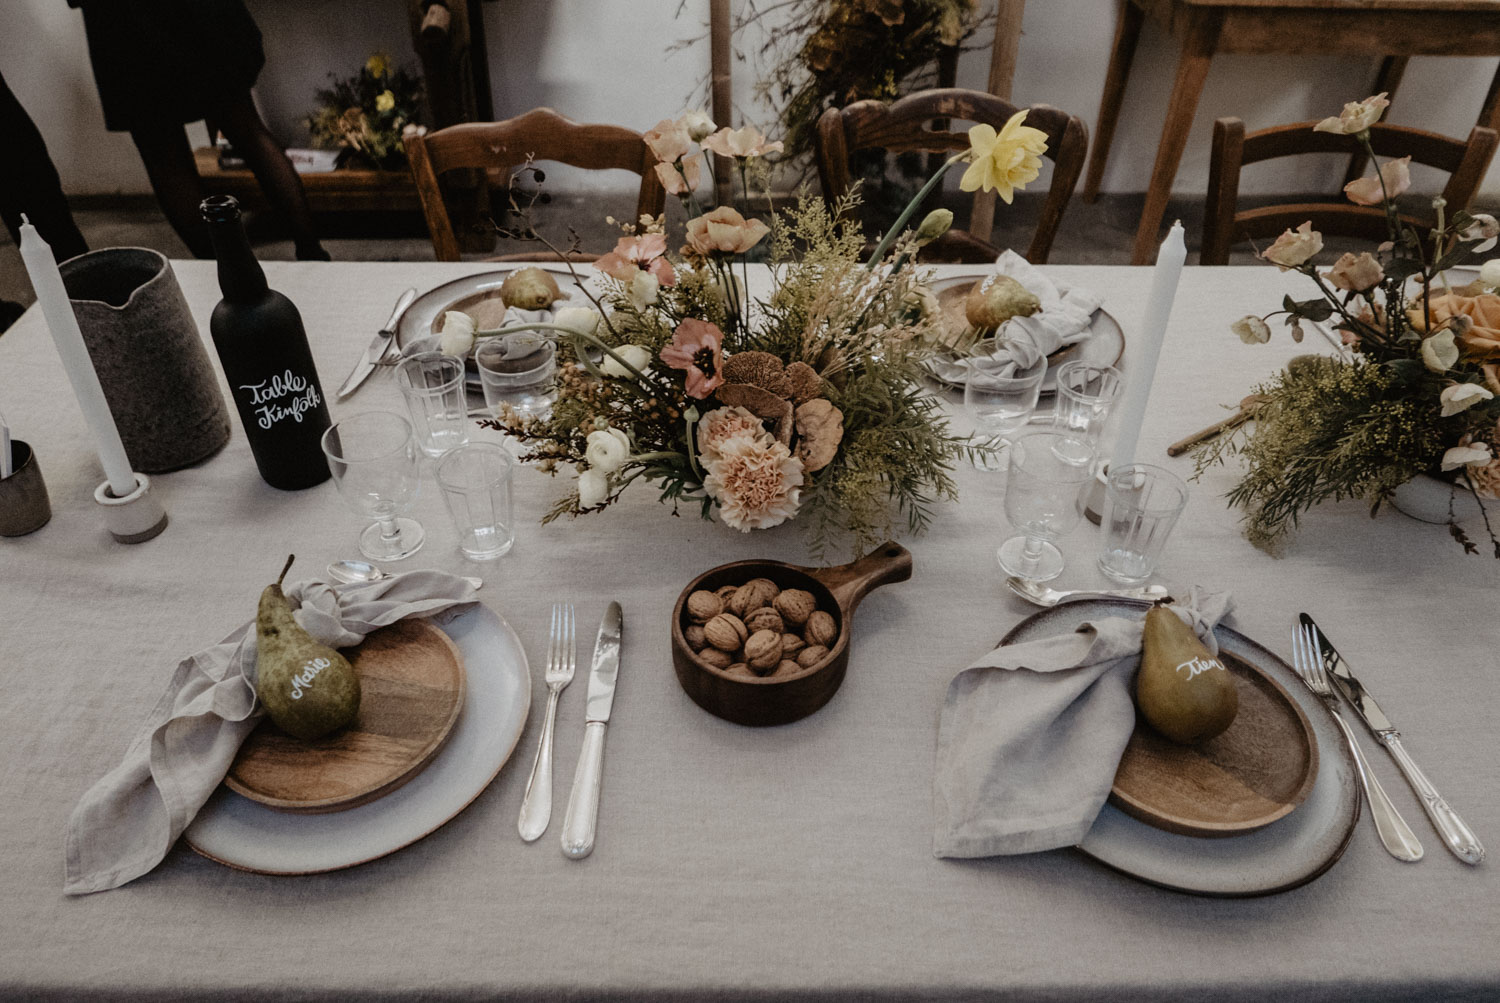 Table inspiration kinfolk et authentique, photographe mariage Aquitaine, Pau, Biarritz, Landes.